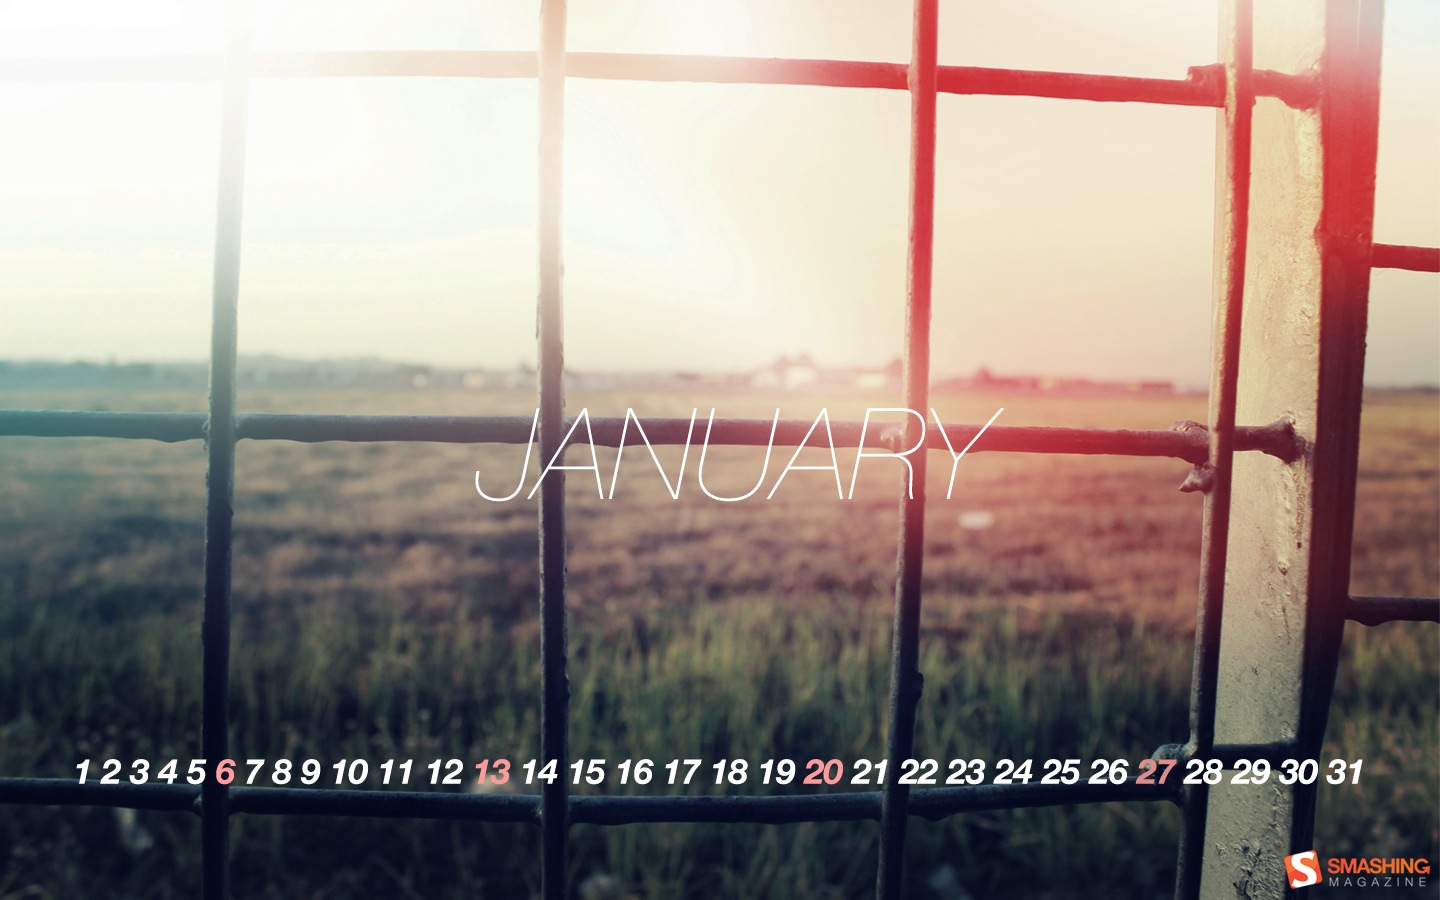 In January Calendar Wallpaper 32143